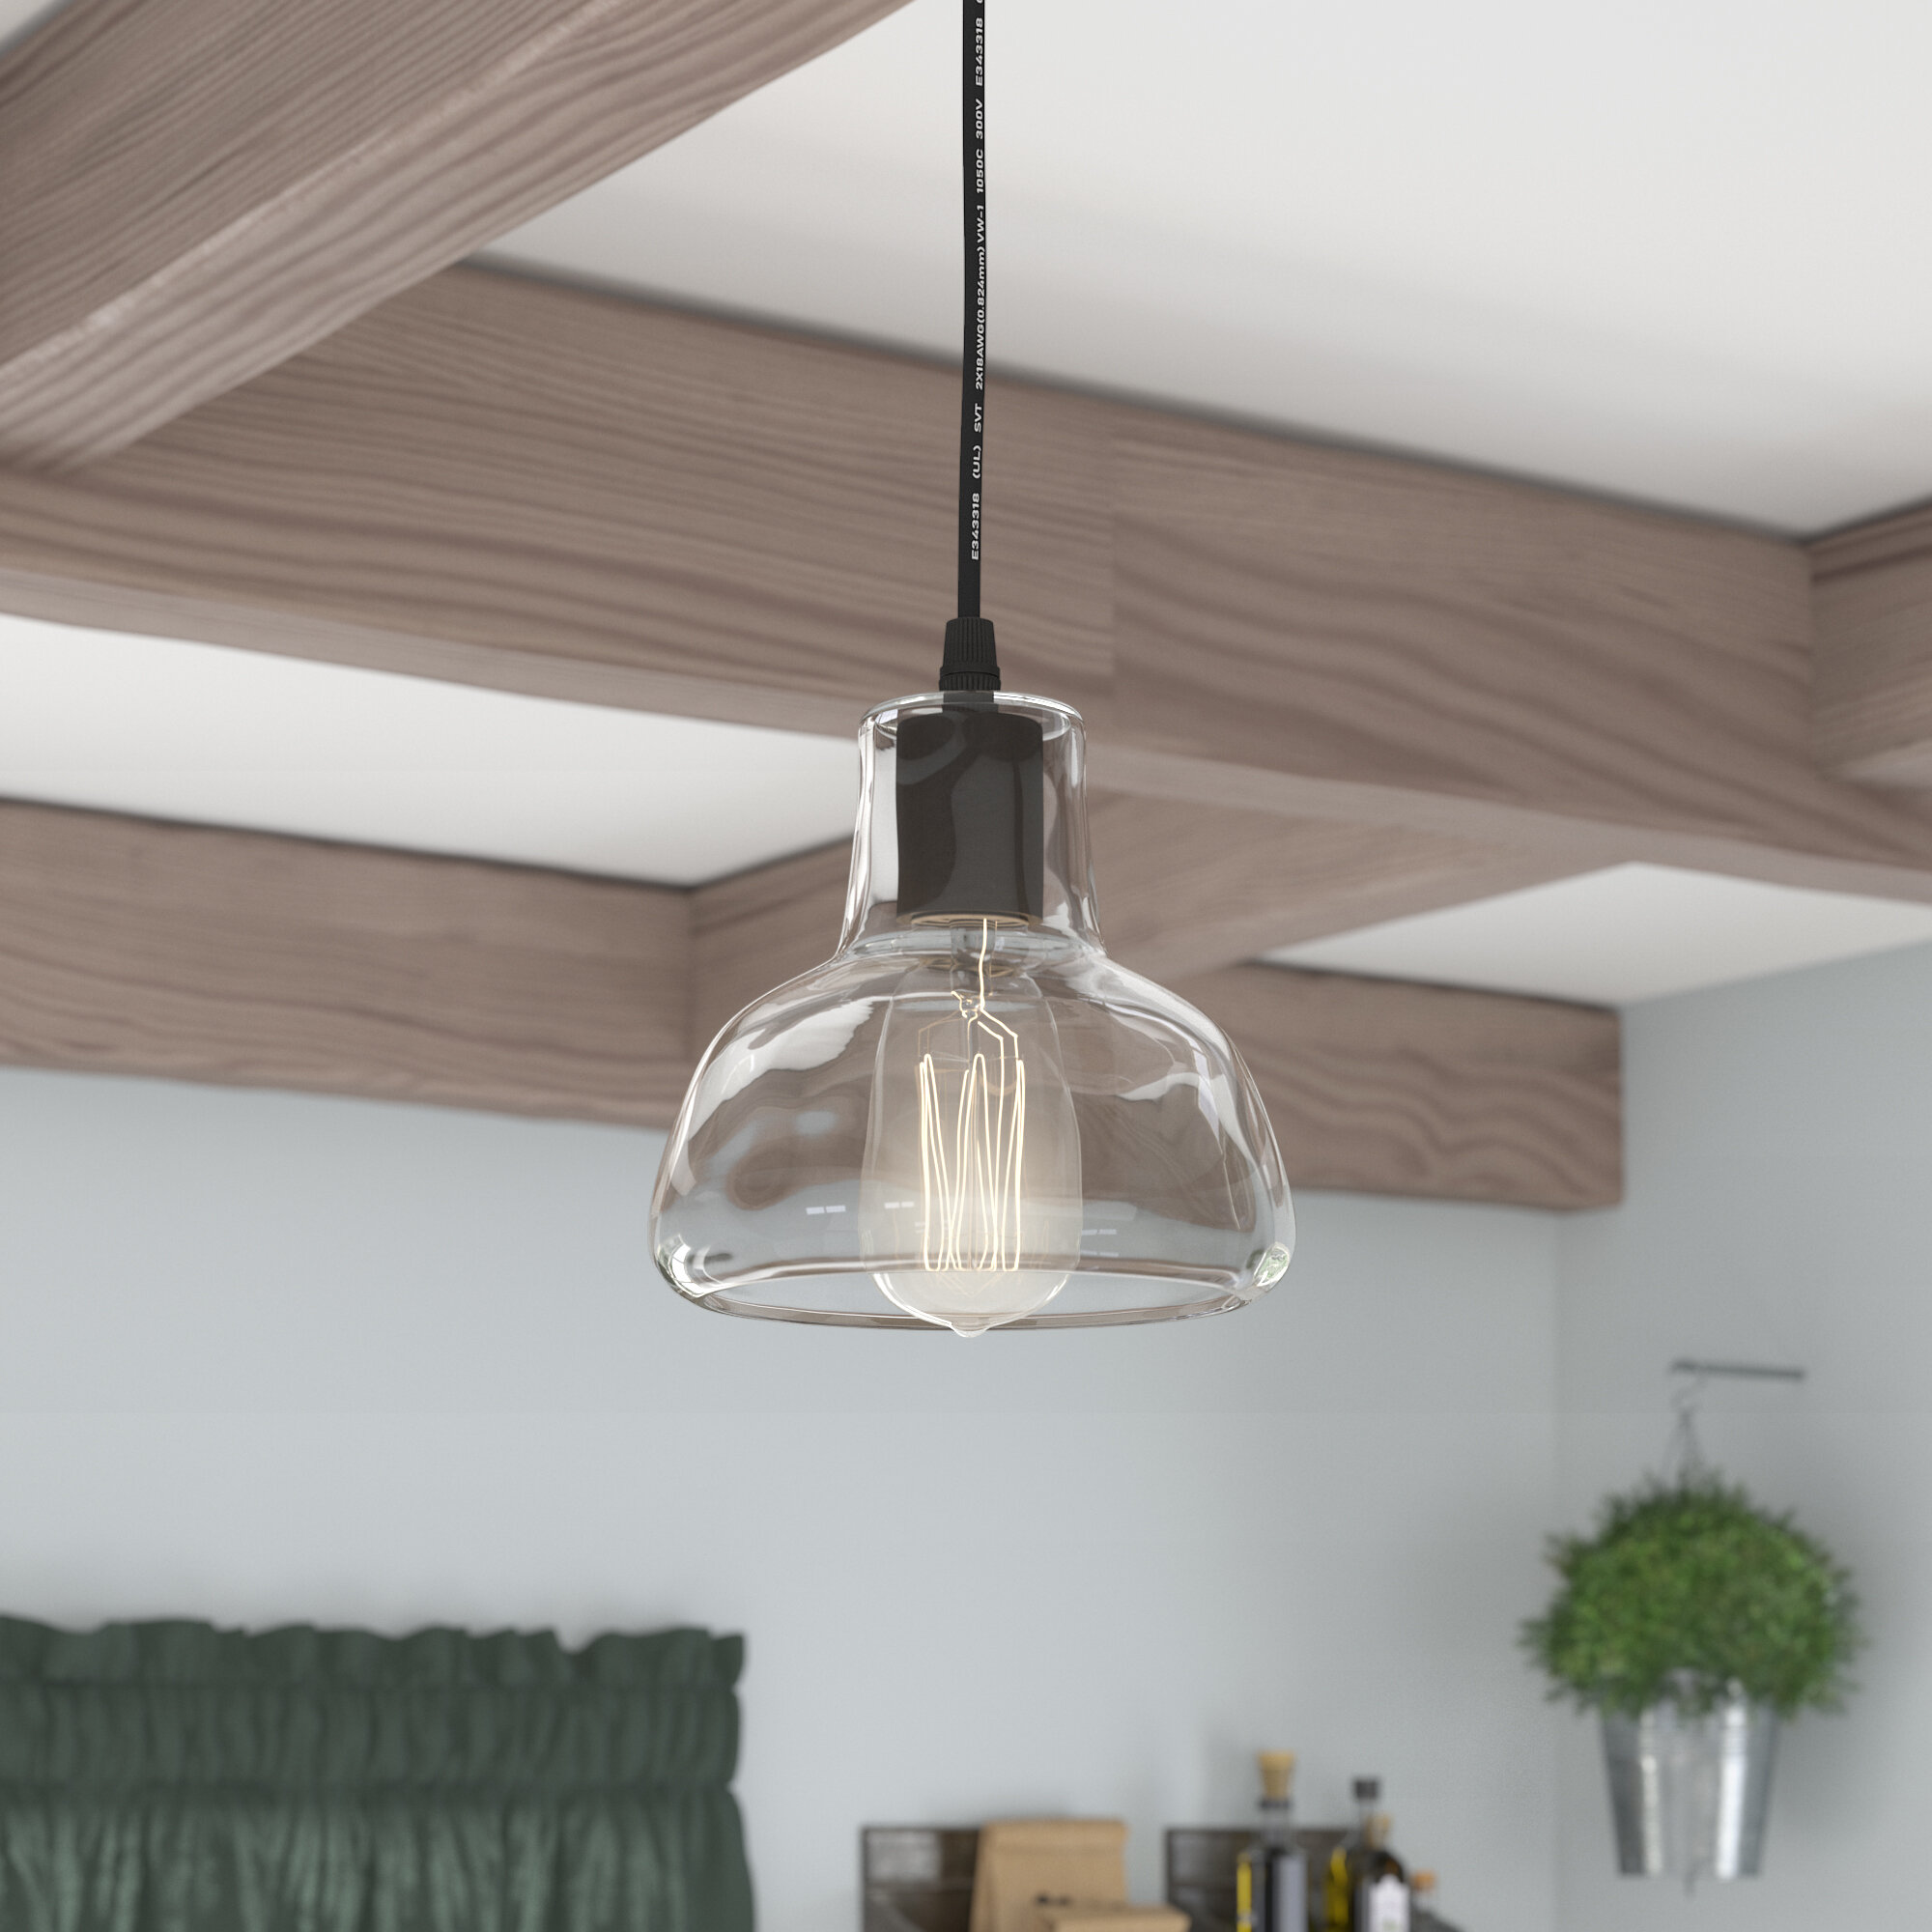 Laurel foundry modern farmhouse bouvet 1 light dome pendant reviews wayfair